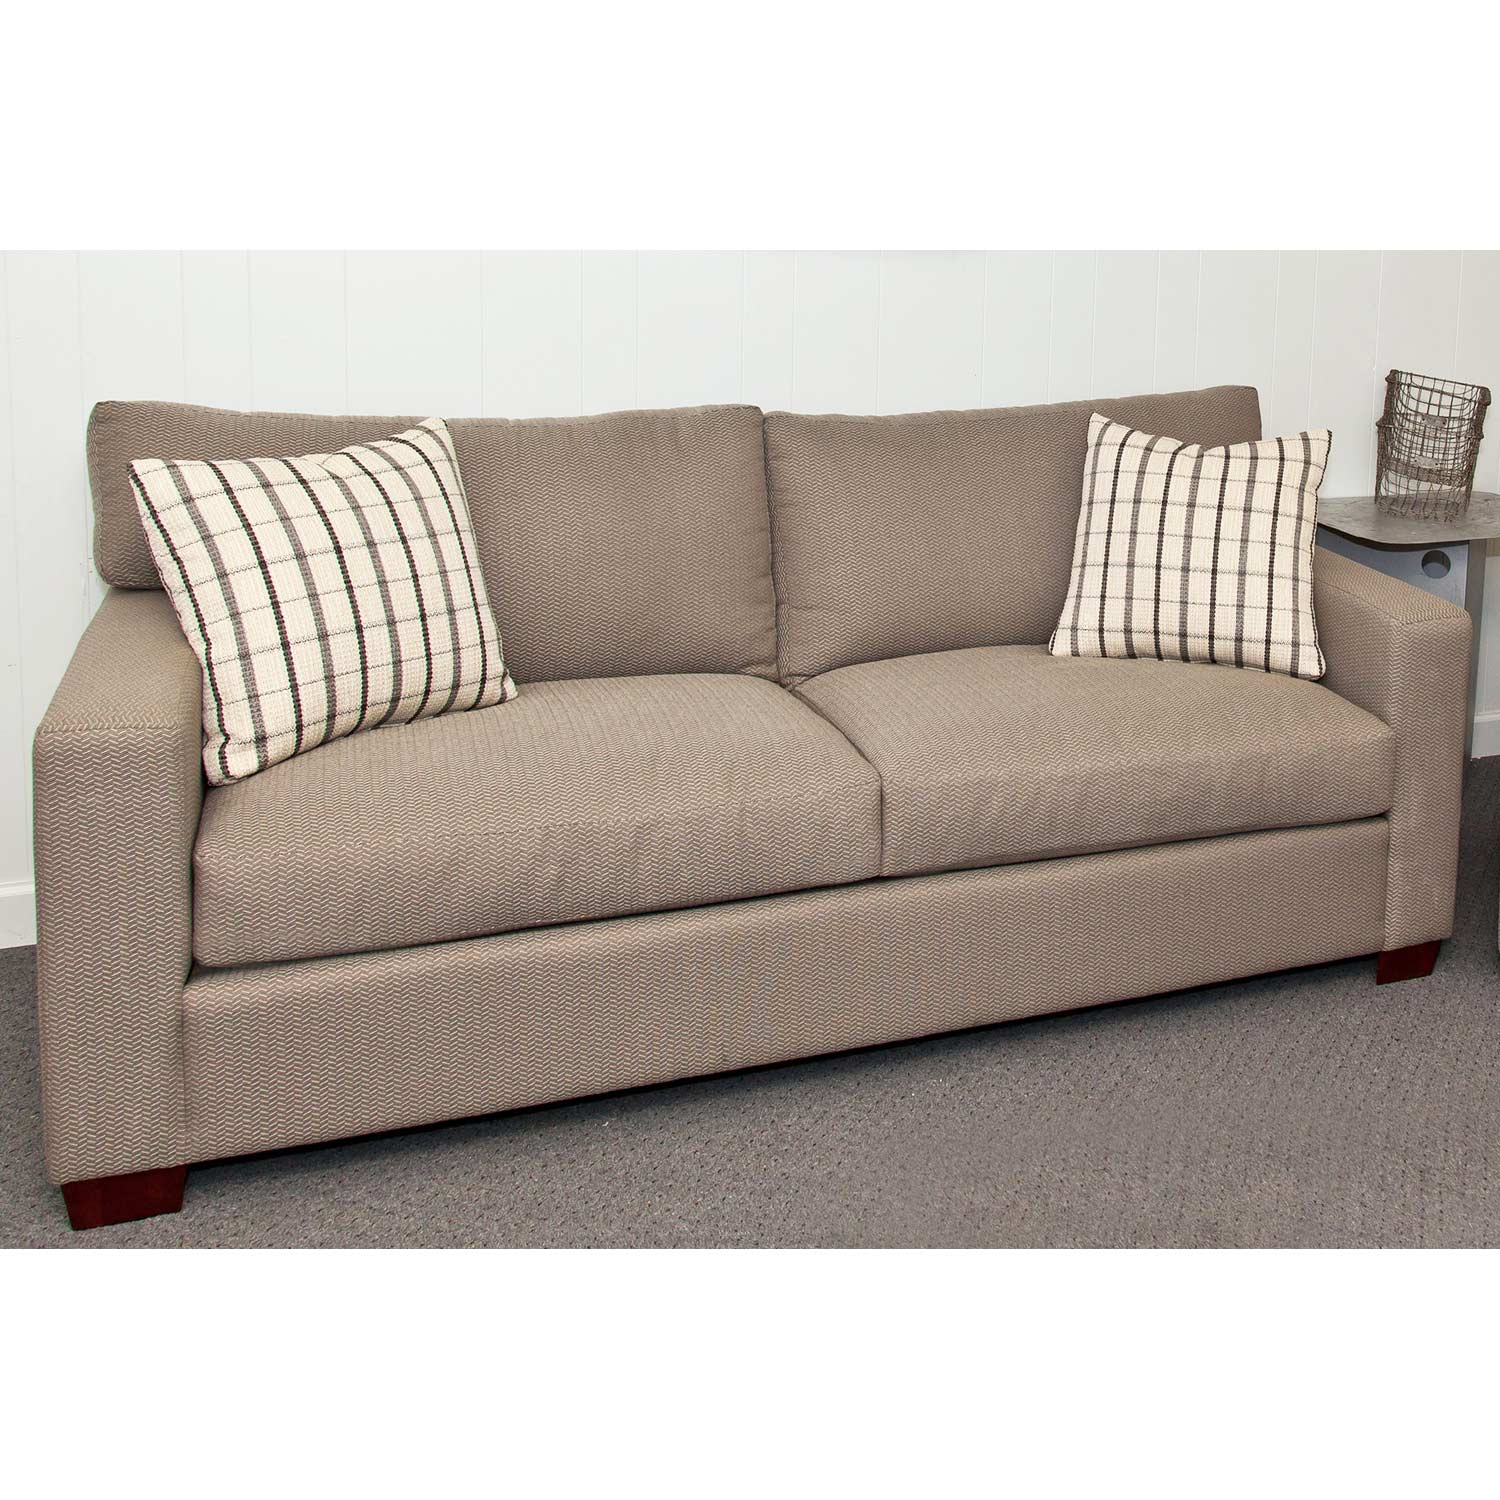 Sophie Contemporary Sofa - Block Wood Feet, Textured Fabric - CHF-50100-S